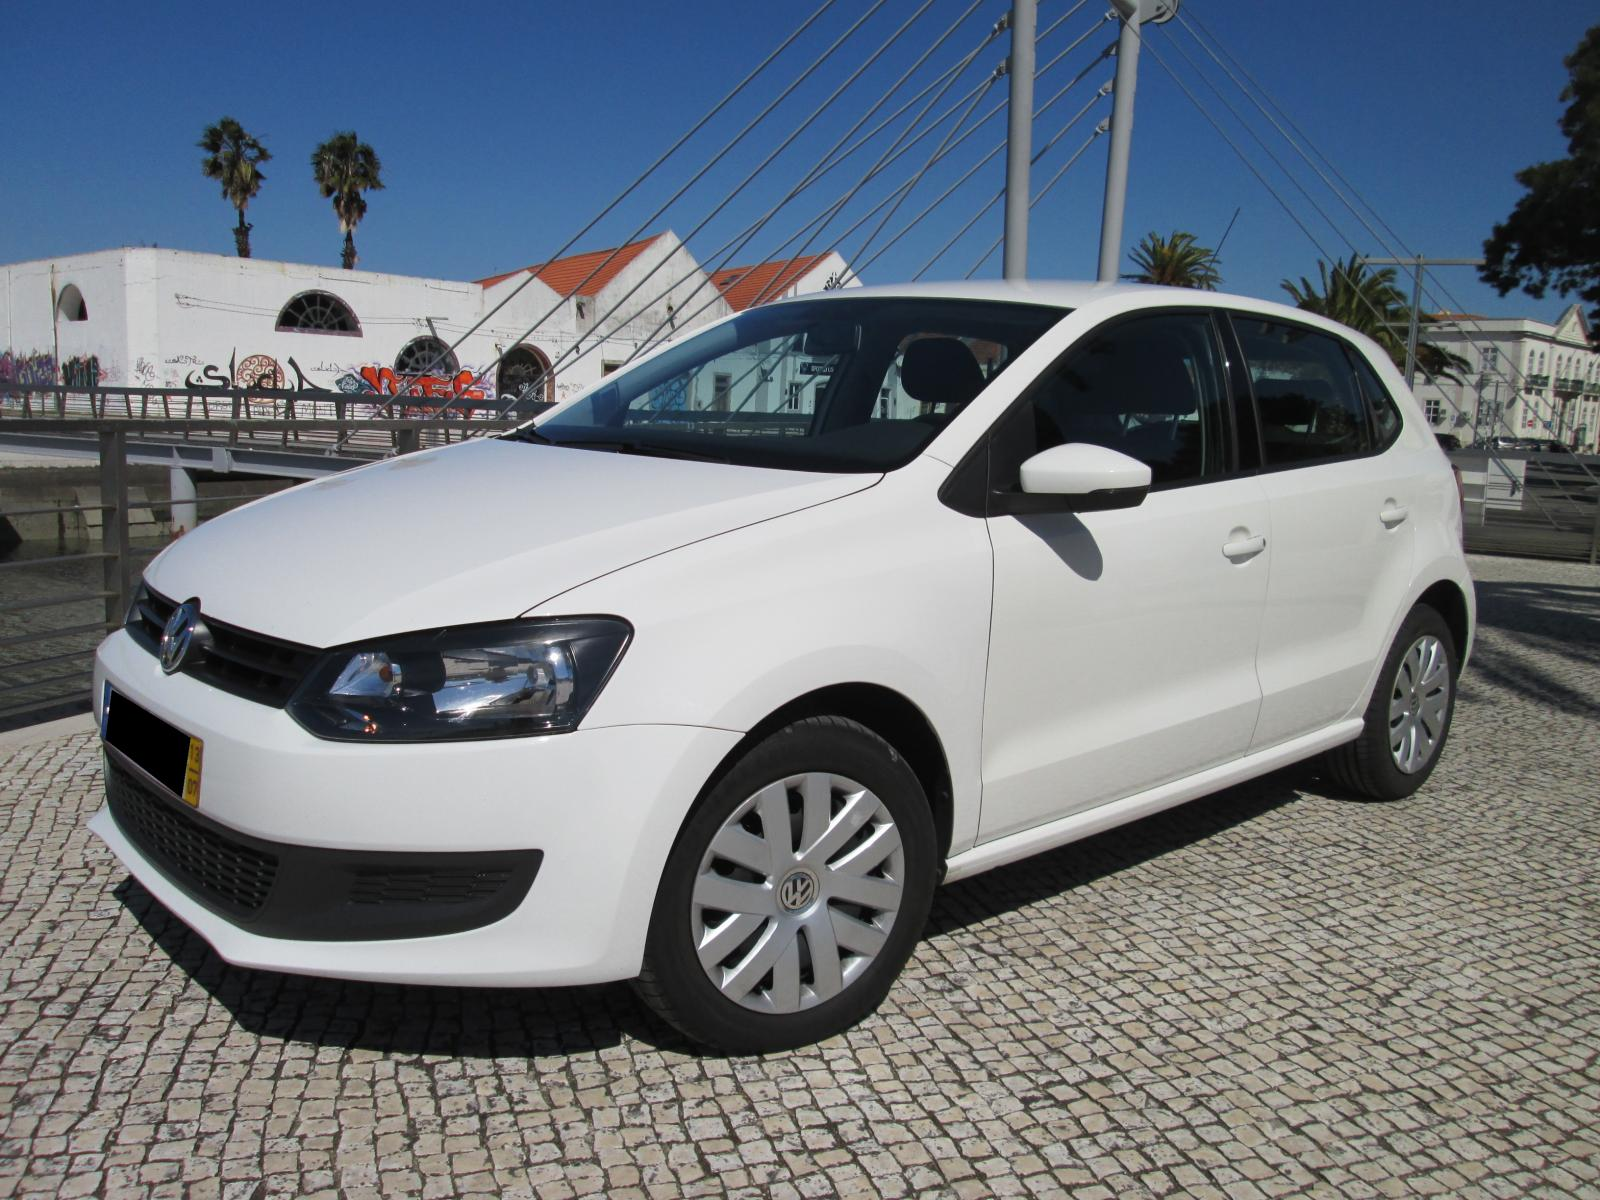 vw polo 1 2 tdi trendline usado 2013 paulo sousa autom veis. Black Bedroom Furniture Sets. Home Design Ideas